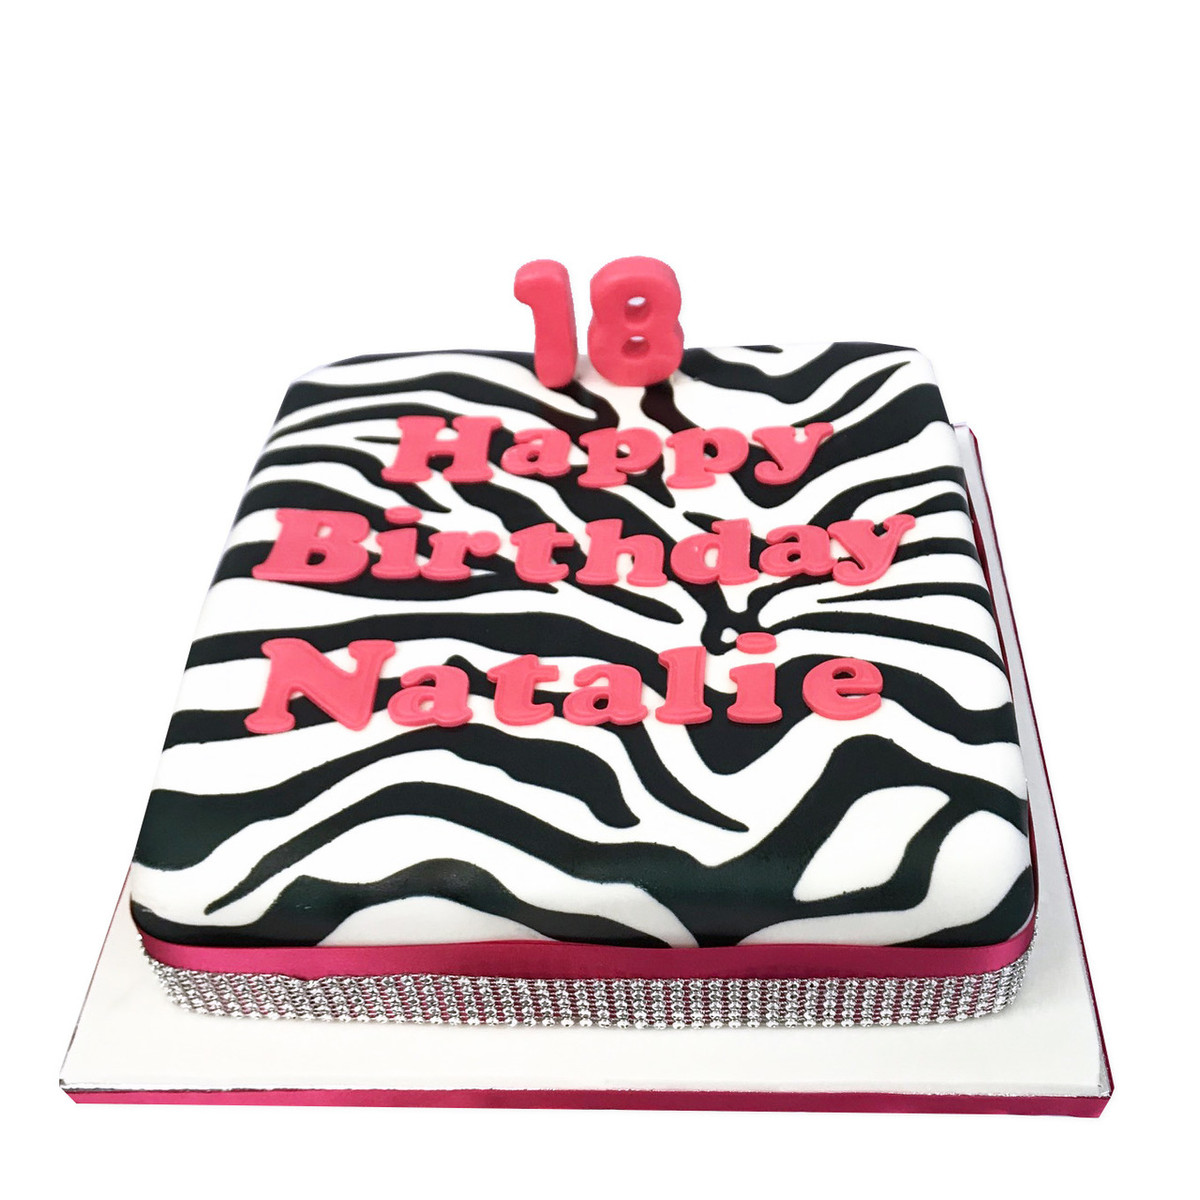 Astonishing Zebra Print Birthday Cake Childrens Birthday Cakes The Funny Birthday Cards Online Overcheapnameinfo